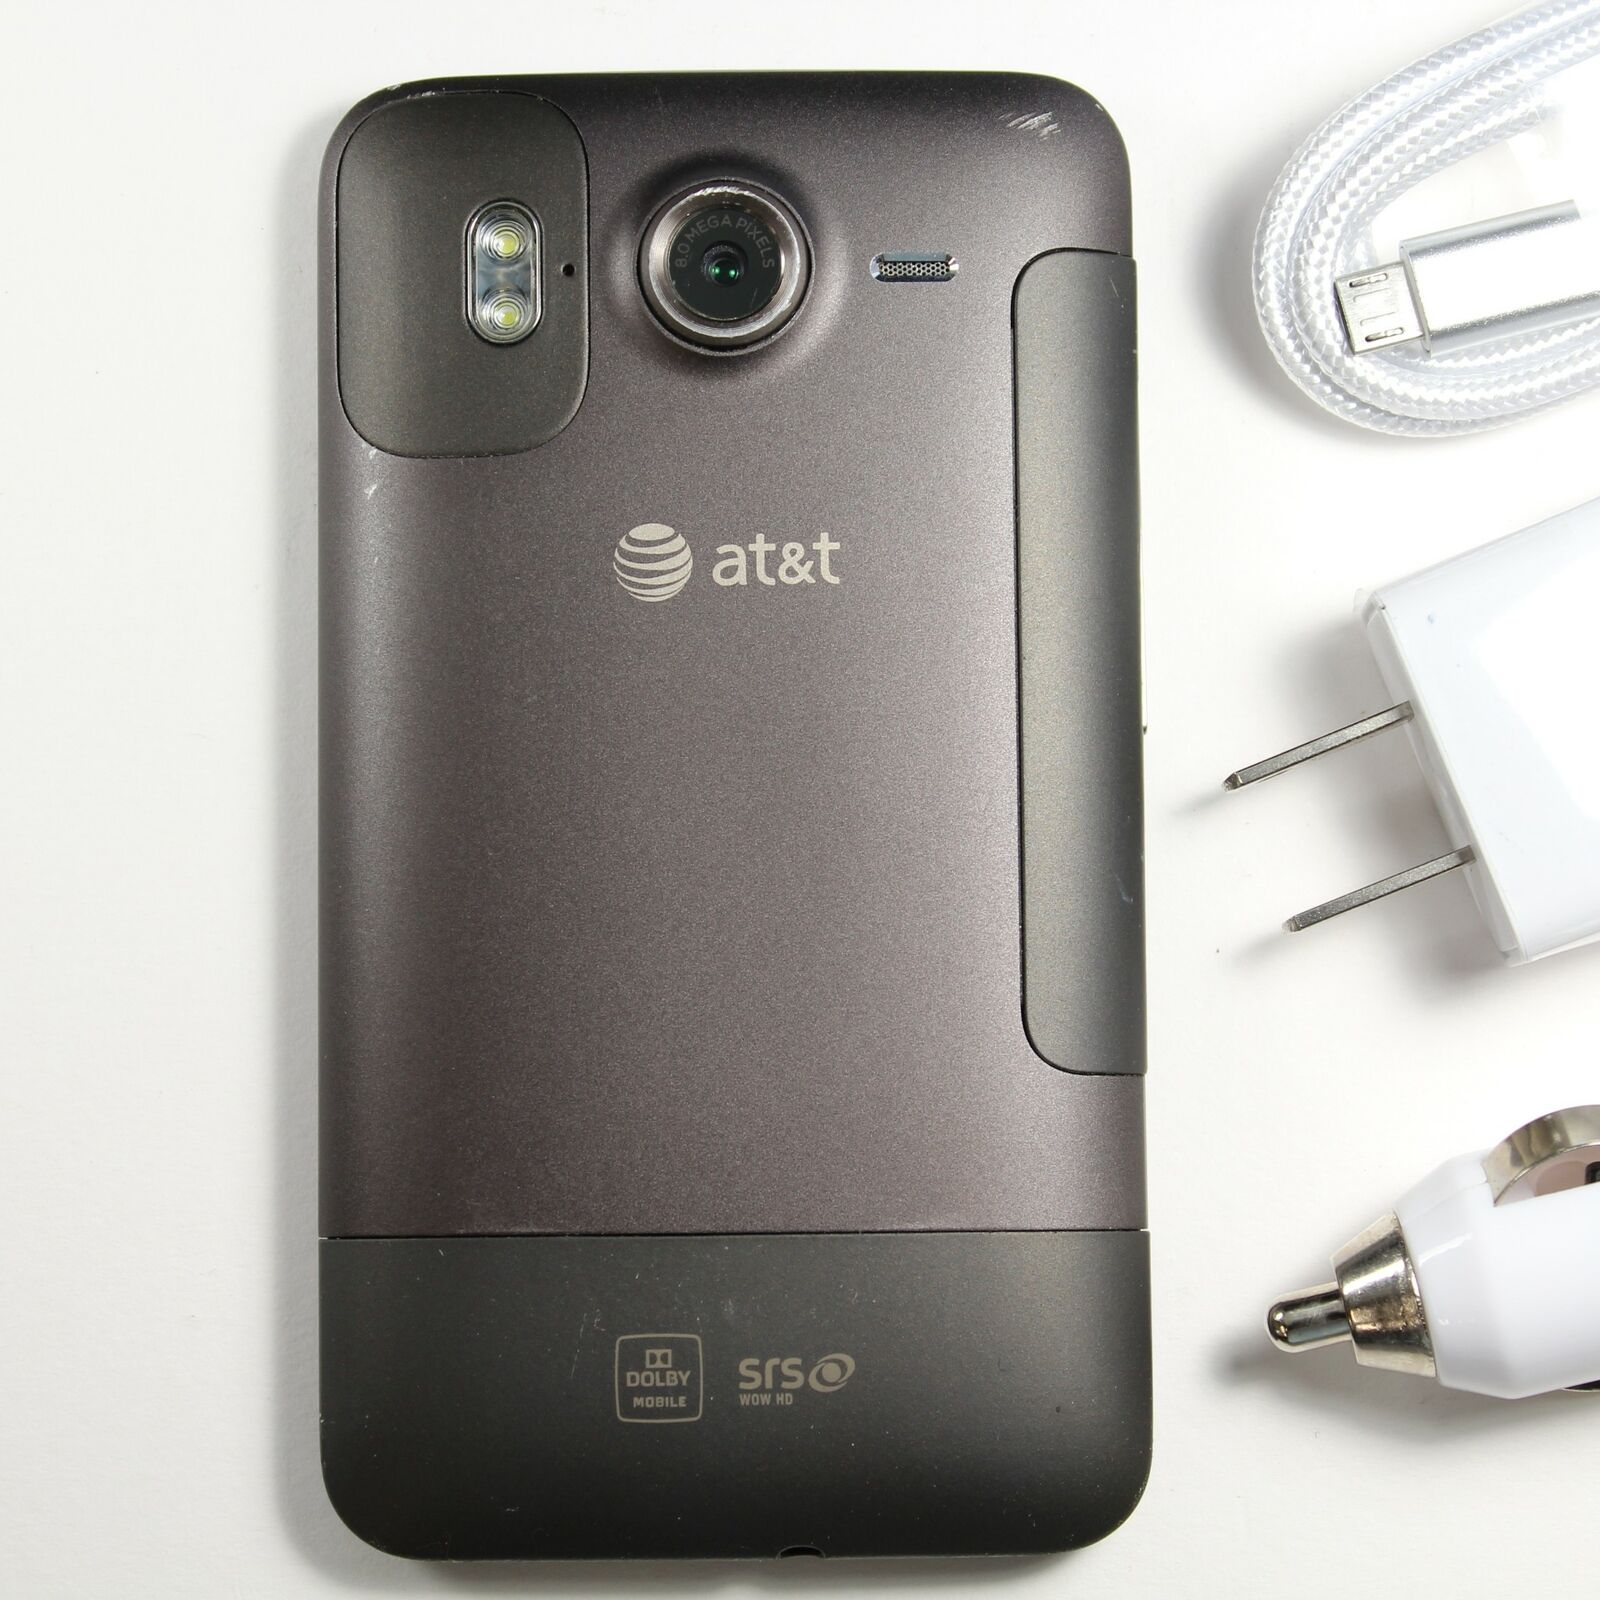 HTC Inspire 4G (AT&T) Smartphone Touchscreen - Wi-Fi Mobile Hotspot, HD Video